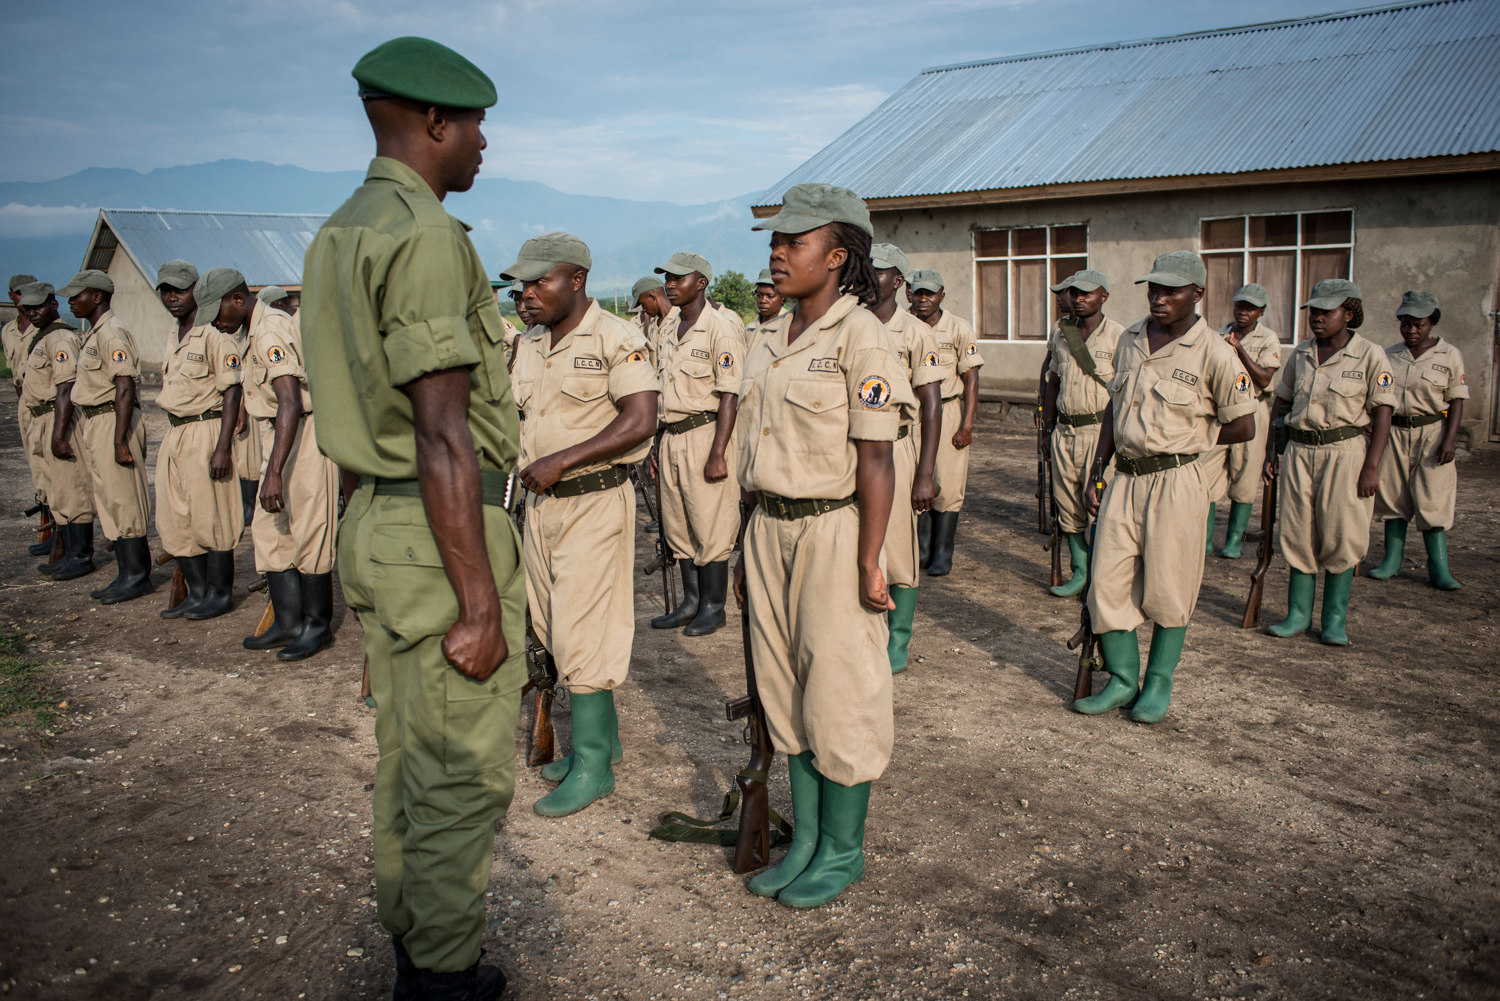 Rangers-in-Training present themselves to the commanding officer each morning.